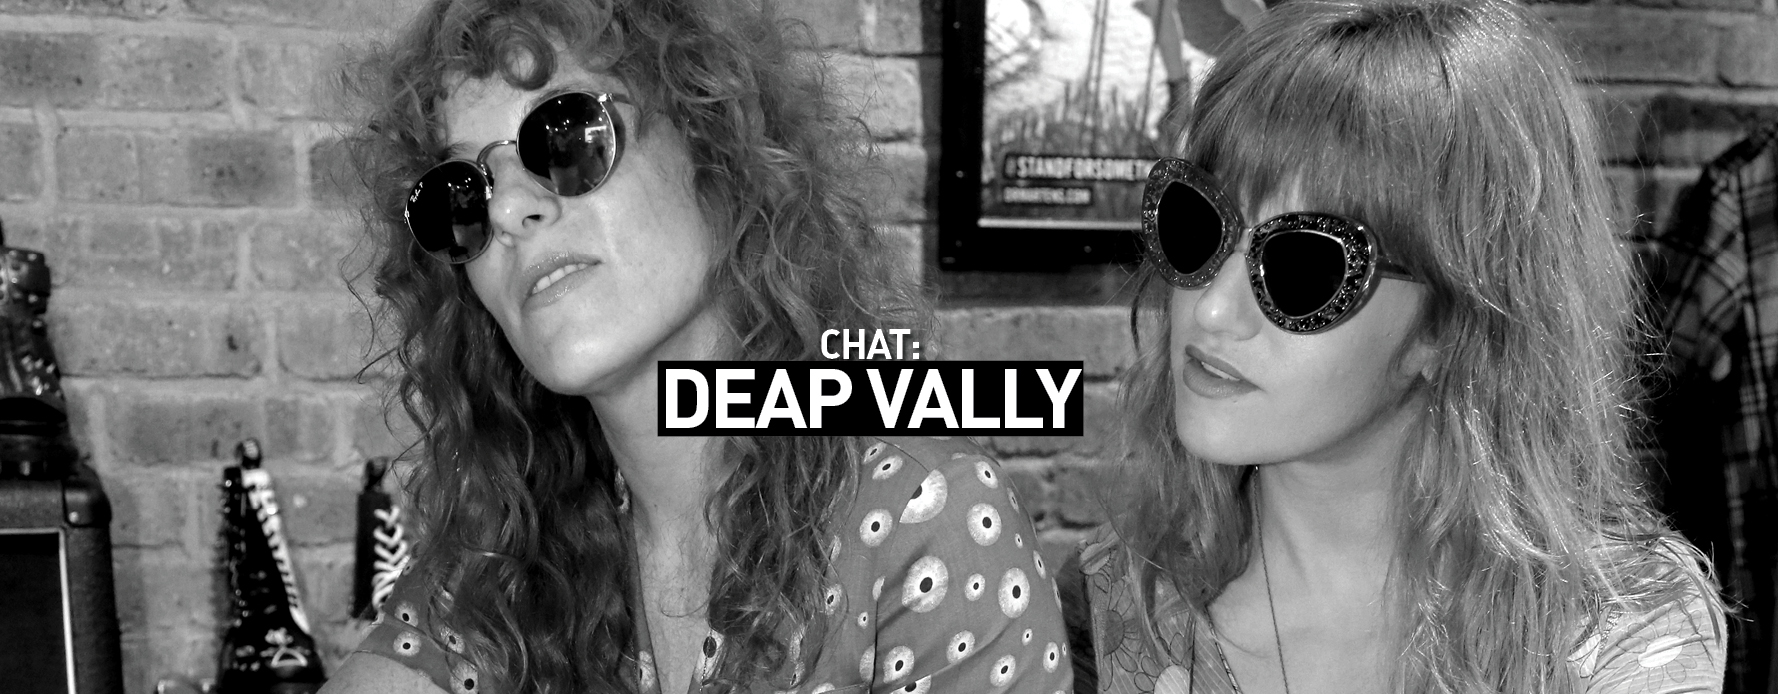 source: Deap Vally